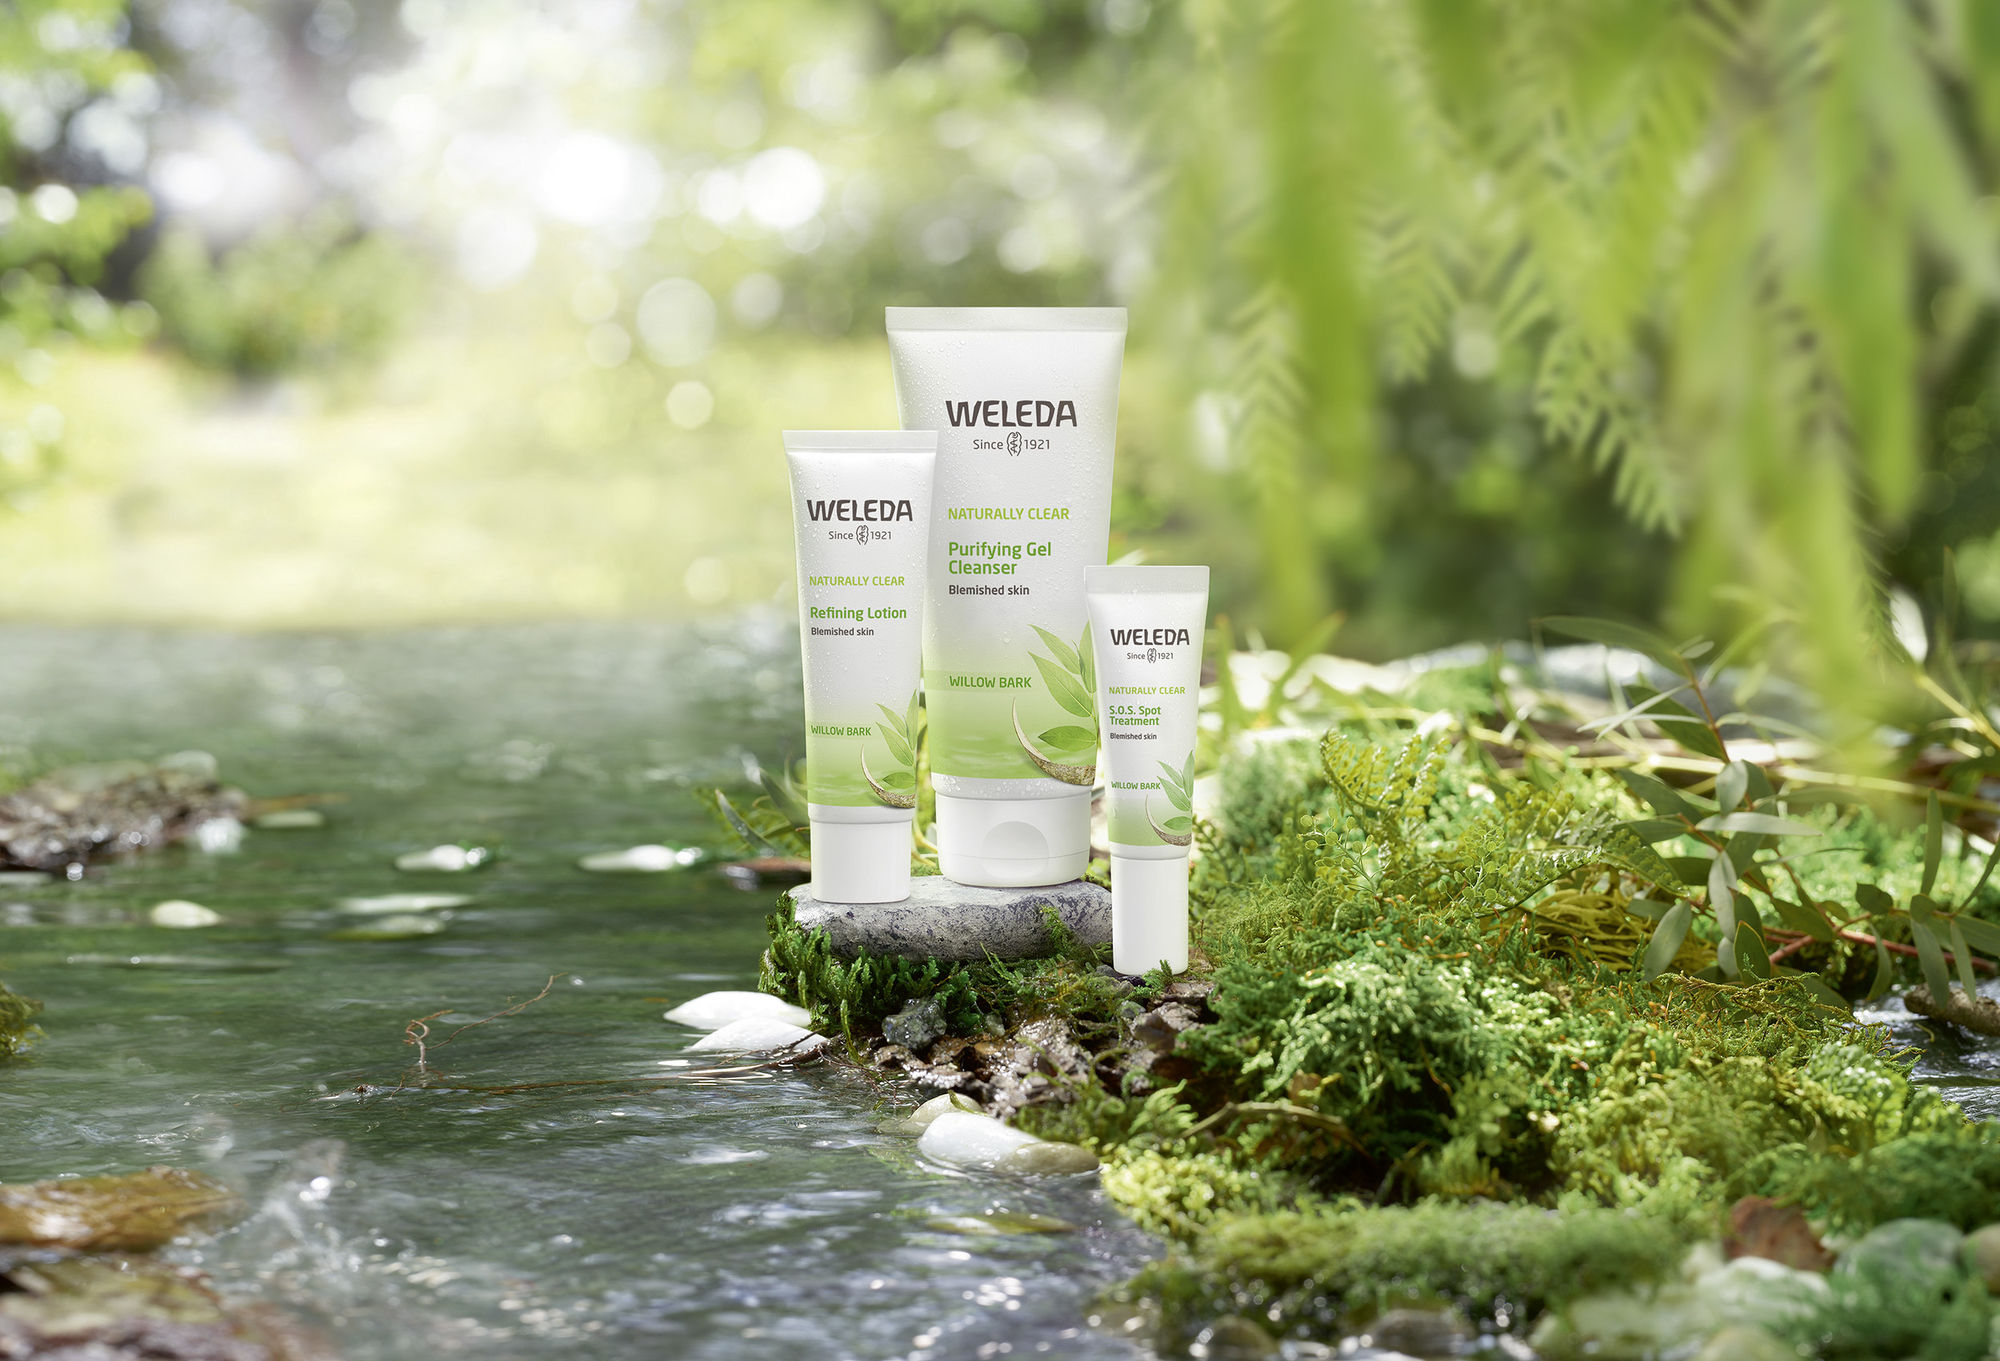 DIRK WEYER for WELEDA